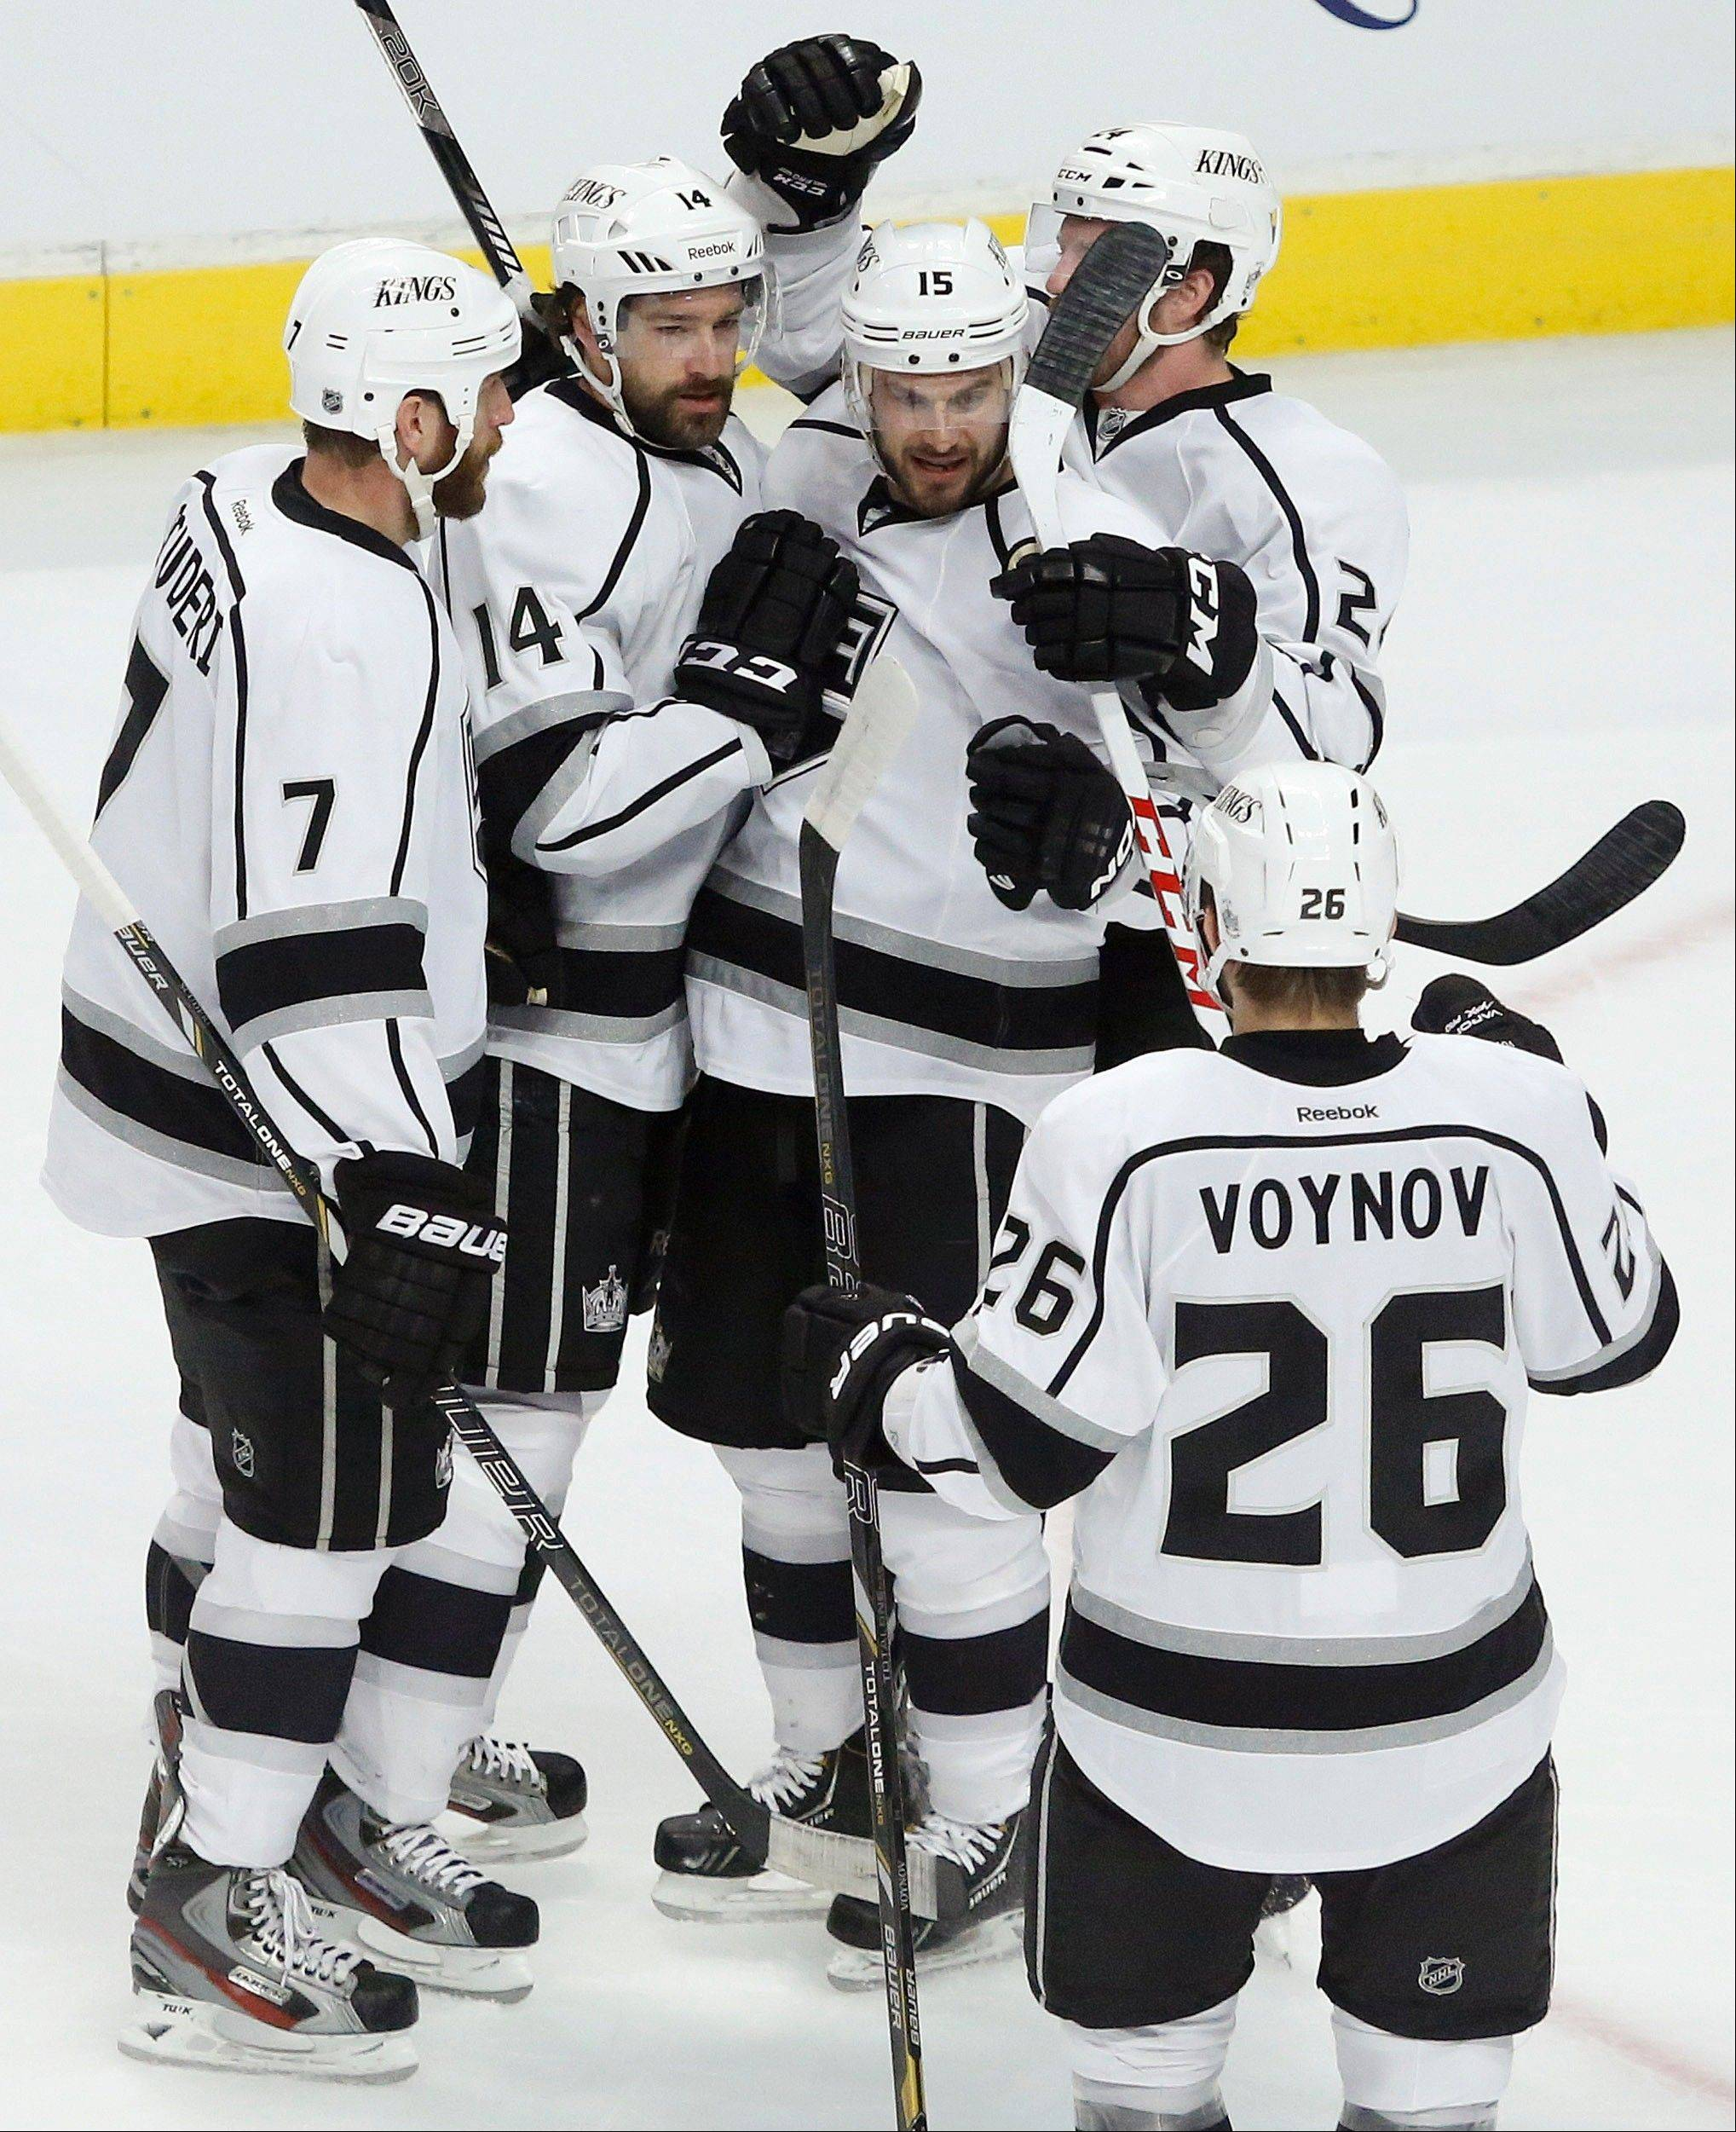 From left, Los Angeles Kings' Rob Scuderi (7), Justin Williams, Brad Richardson, Colin Fraser and Slava Voynov celebrate after Williams scored a goal against the Chicago Blackhawks during the first period in Game 1 of the NHL hockey Stanley Cup Western Conference finals Saturday, June 1, 2013, in Chicago.